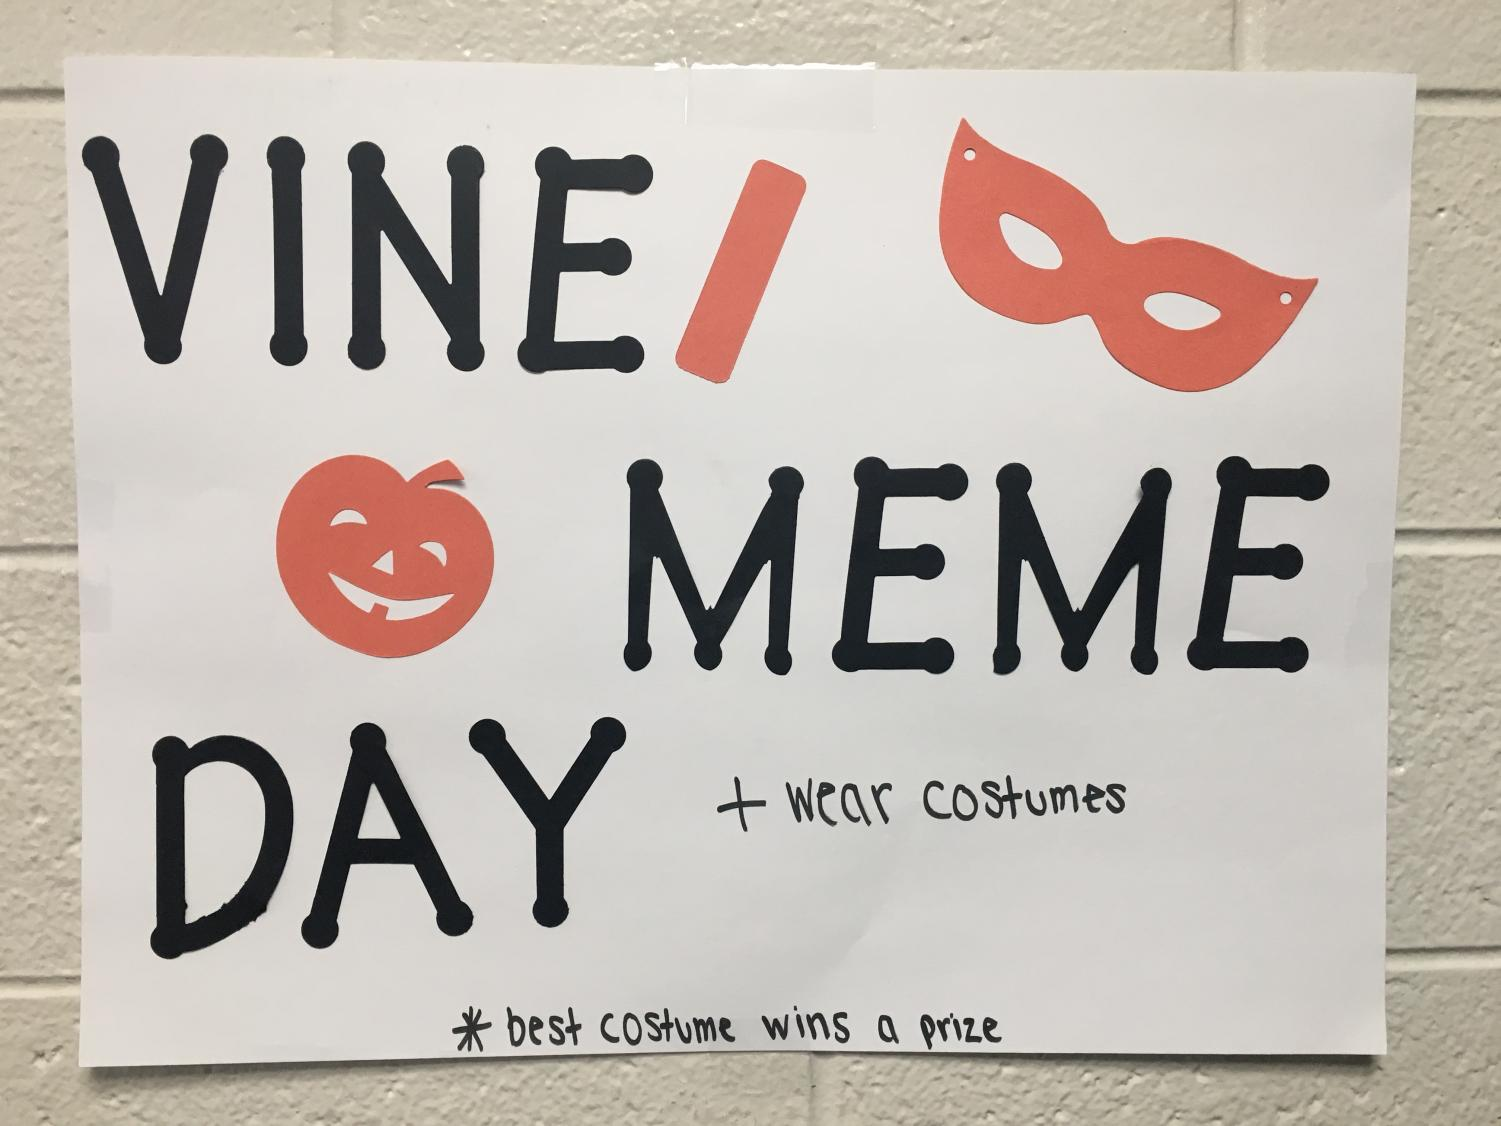 Vine/meme day takes place on Halloween.